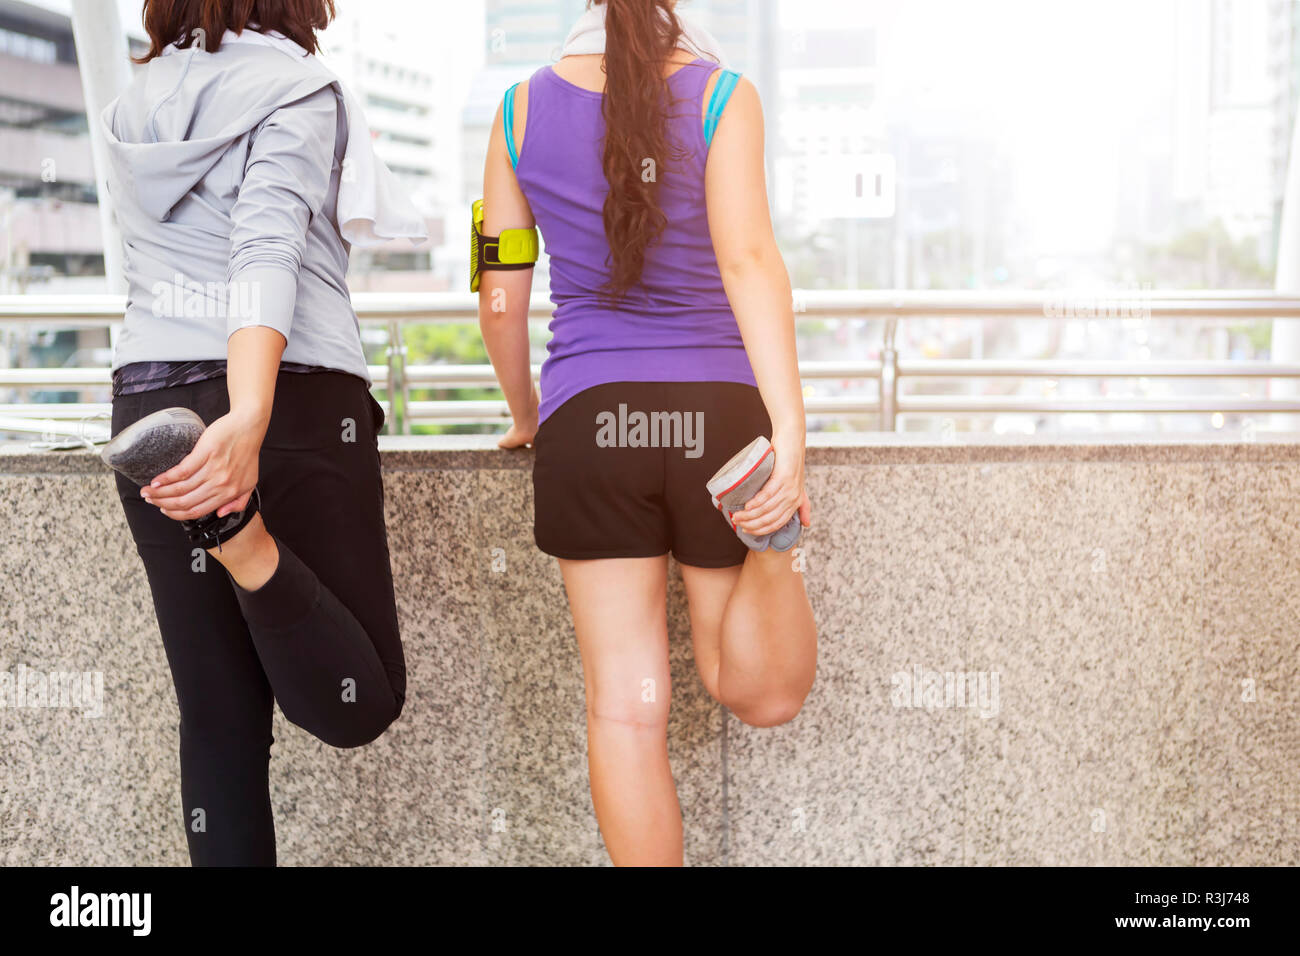 People workout and exercising in the morning. - Stock Image